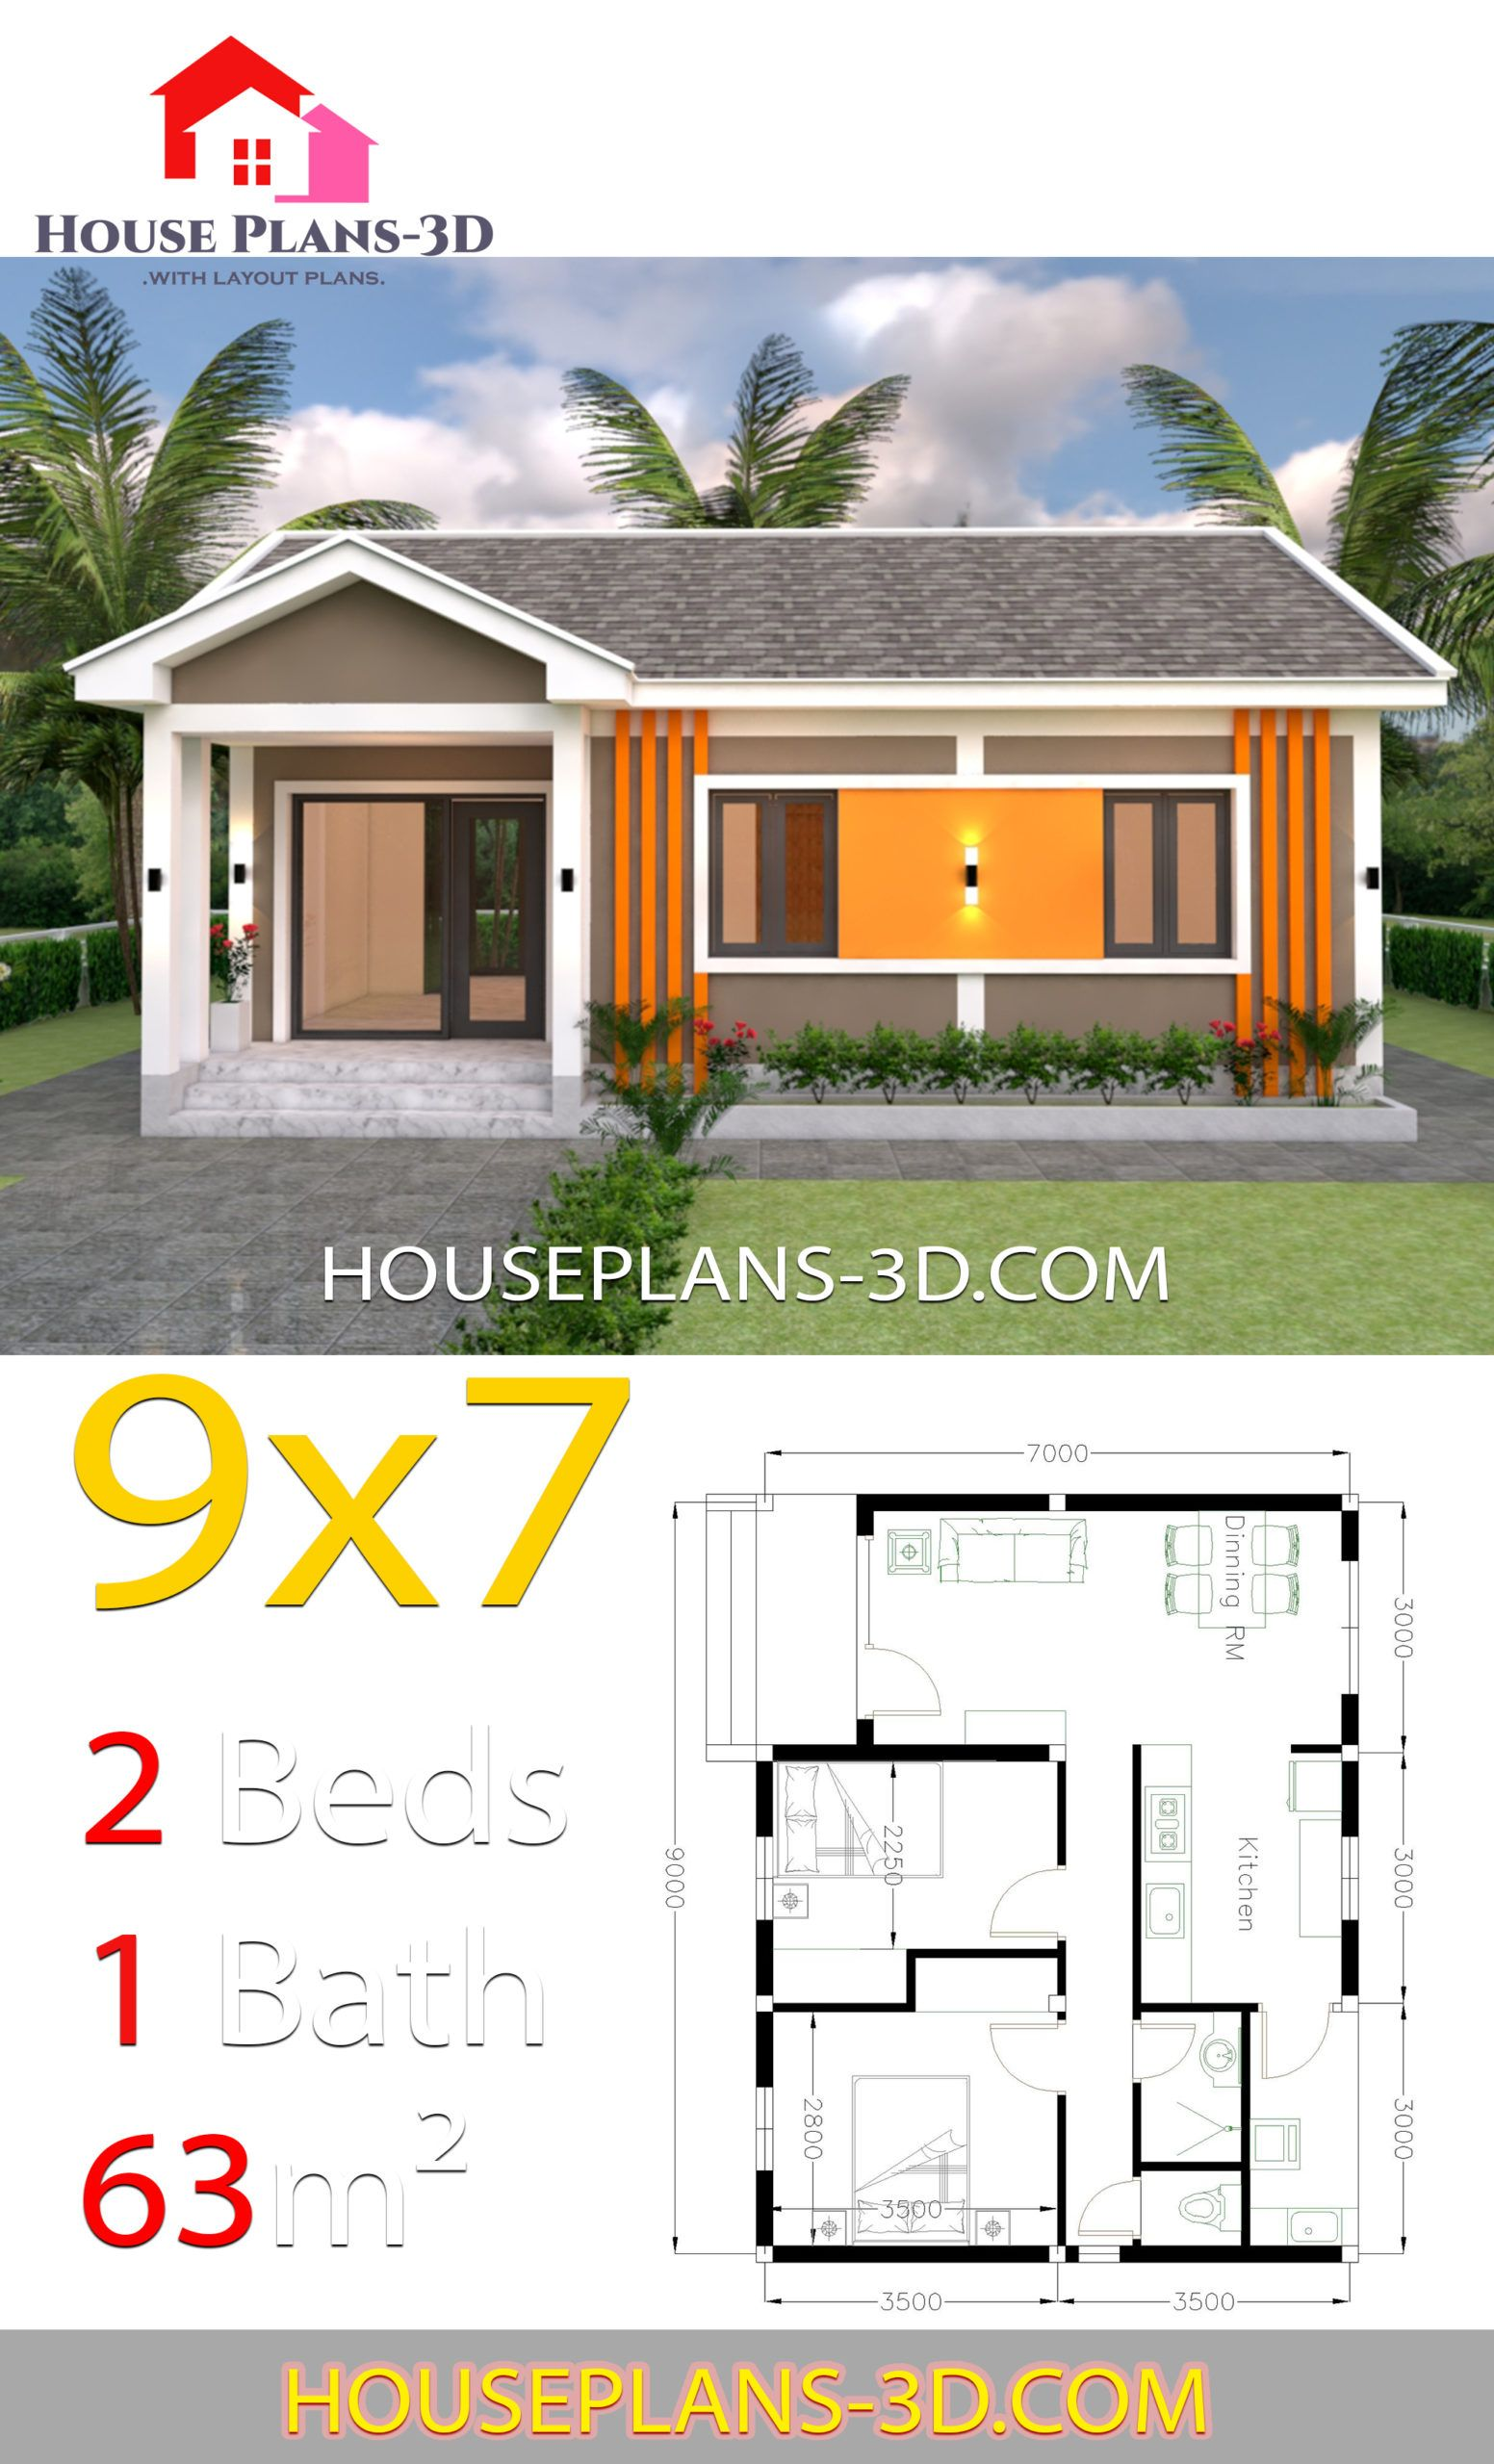 House Plans 9x7 With 2 Bedrooms Gable Roof House Plans 3d Bungalow House Plans House Plans Diy House Plans